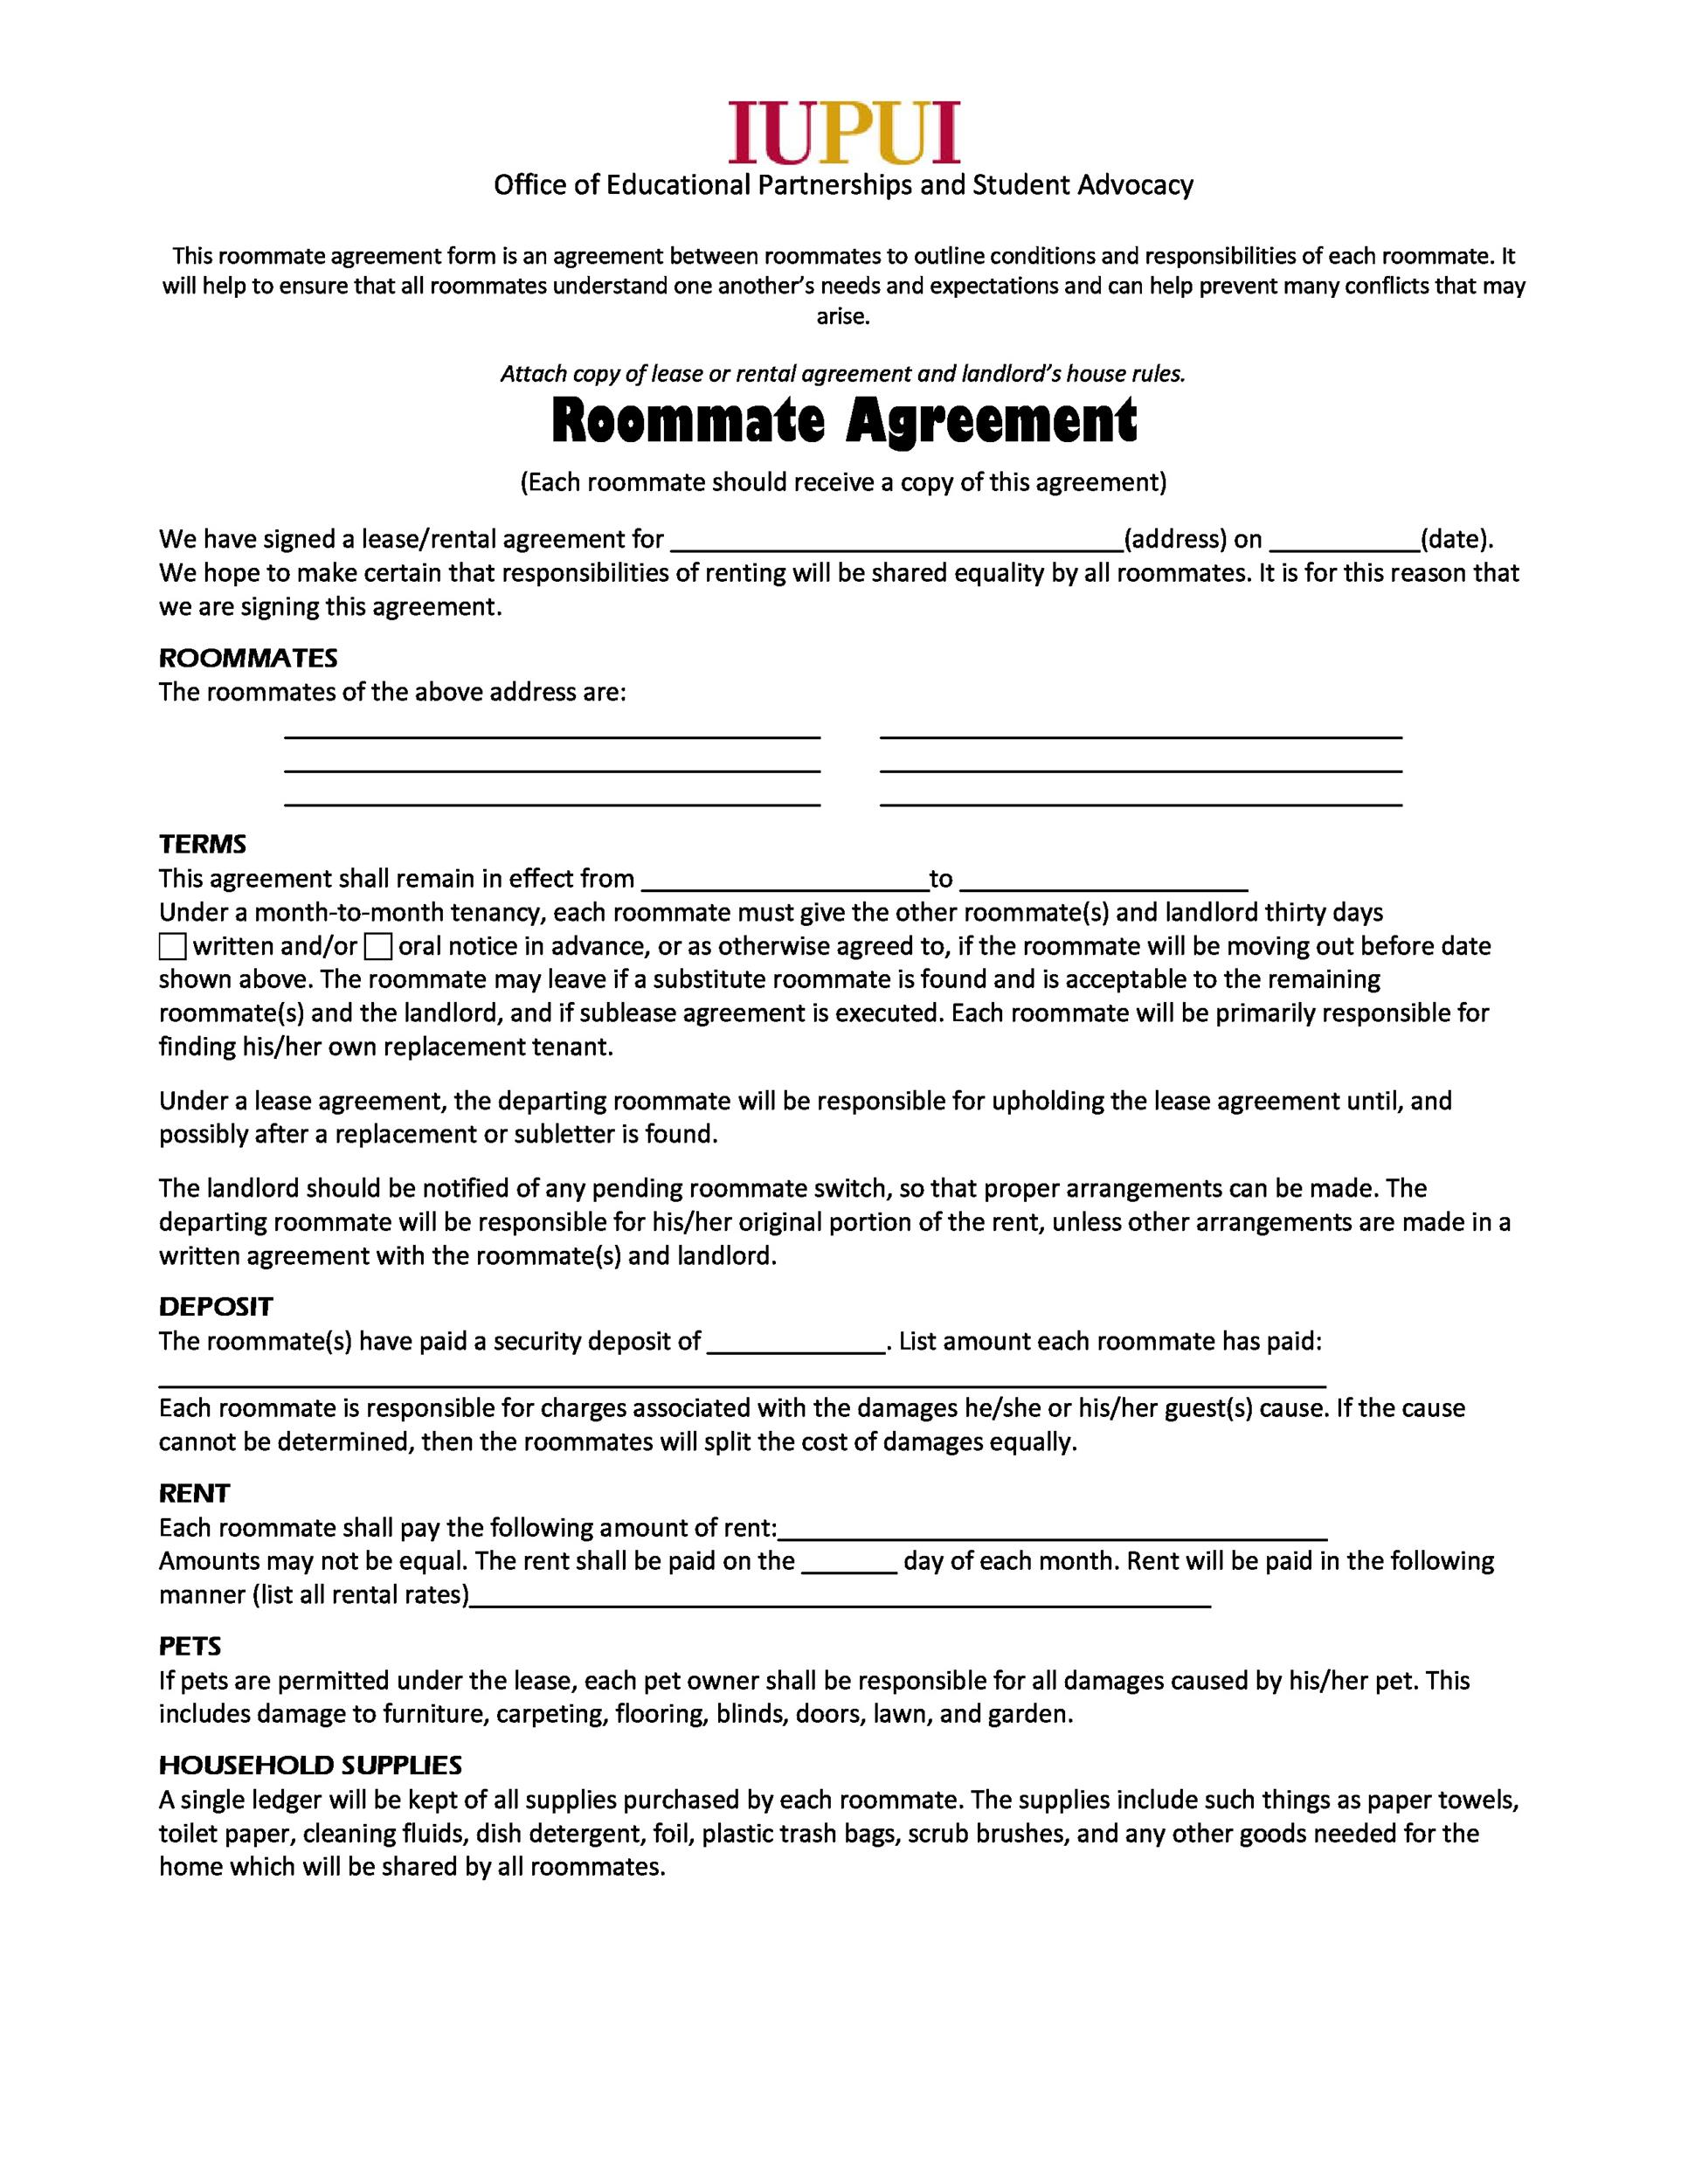 40 free roommate agreement templates forms word pdf printable roommate agreement template 14 platinumwayz